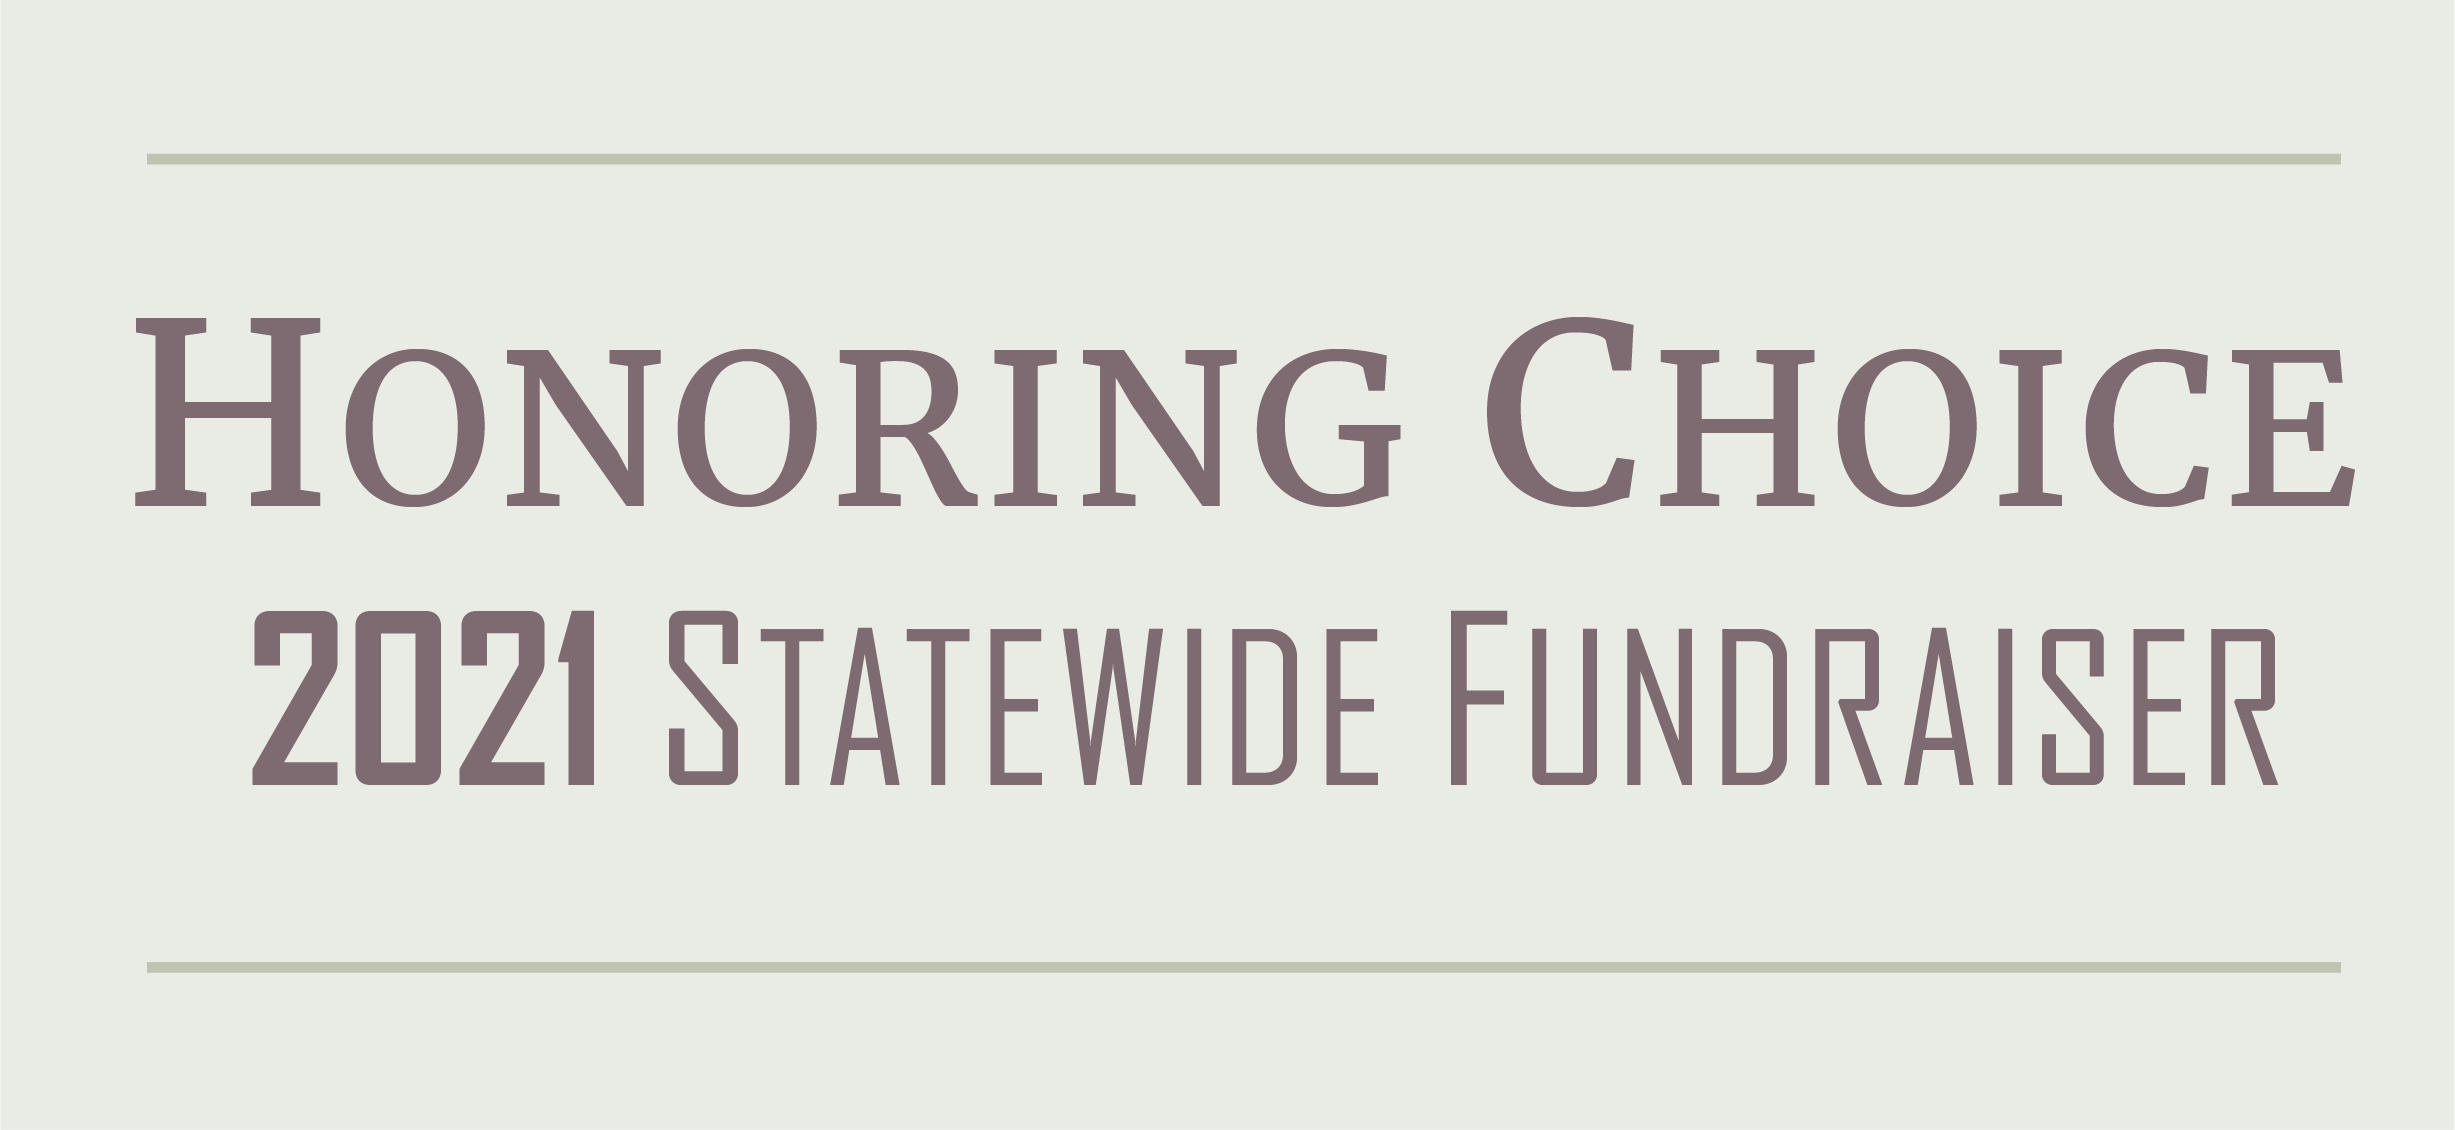 Honoring Choice - 2021 Statewide Fundraiser